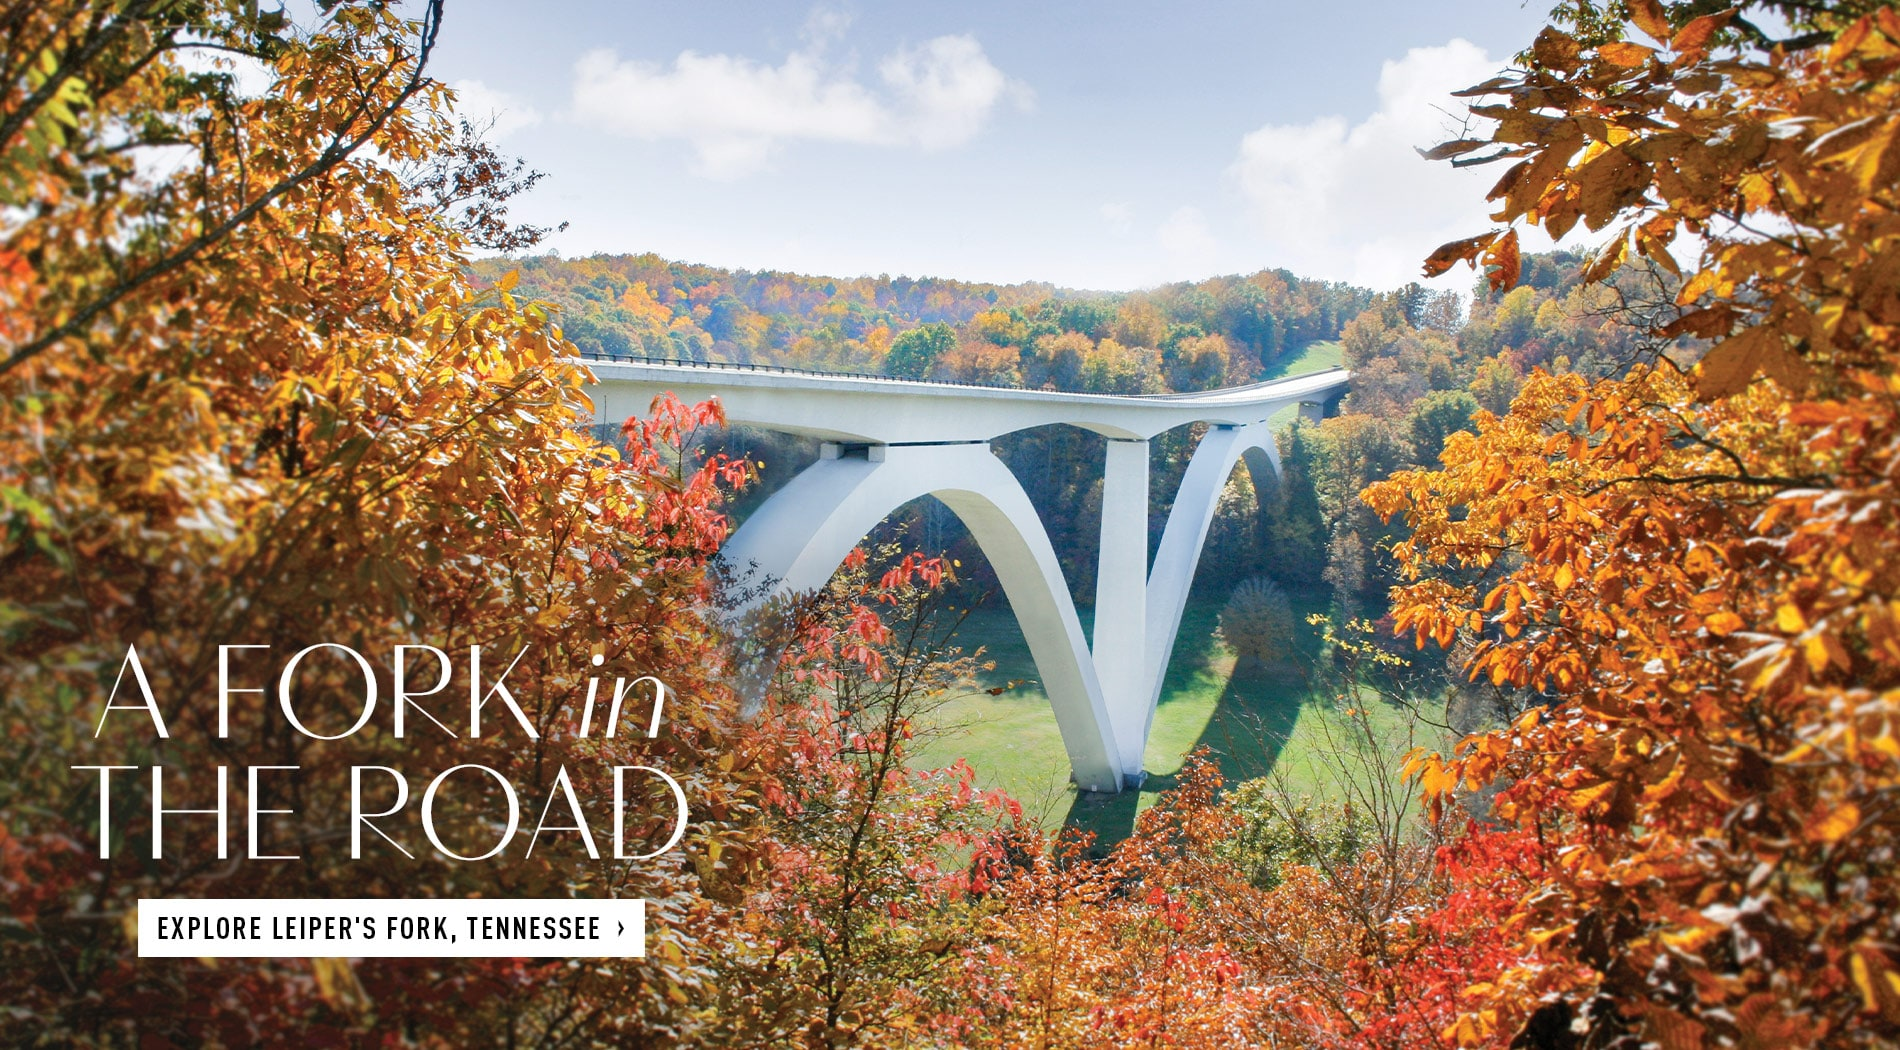 VIE Magazine - Travel Issue - January 2020 - Franklin and Leipers, Fork, Tennessee